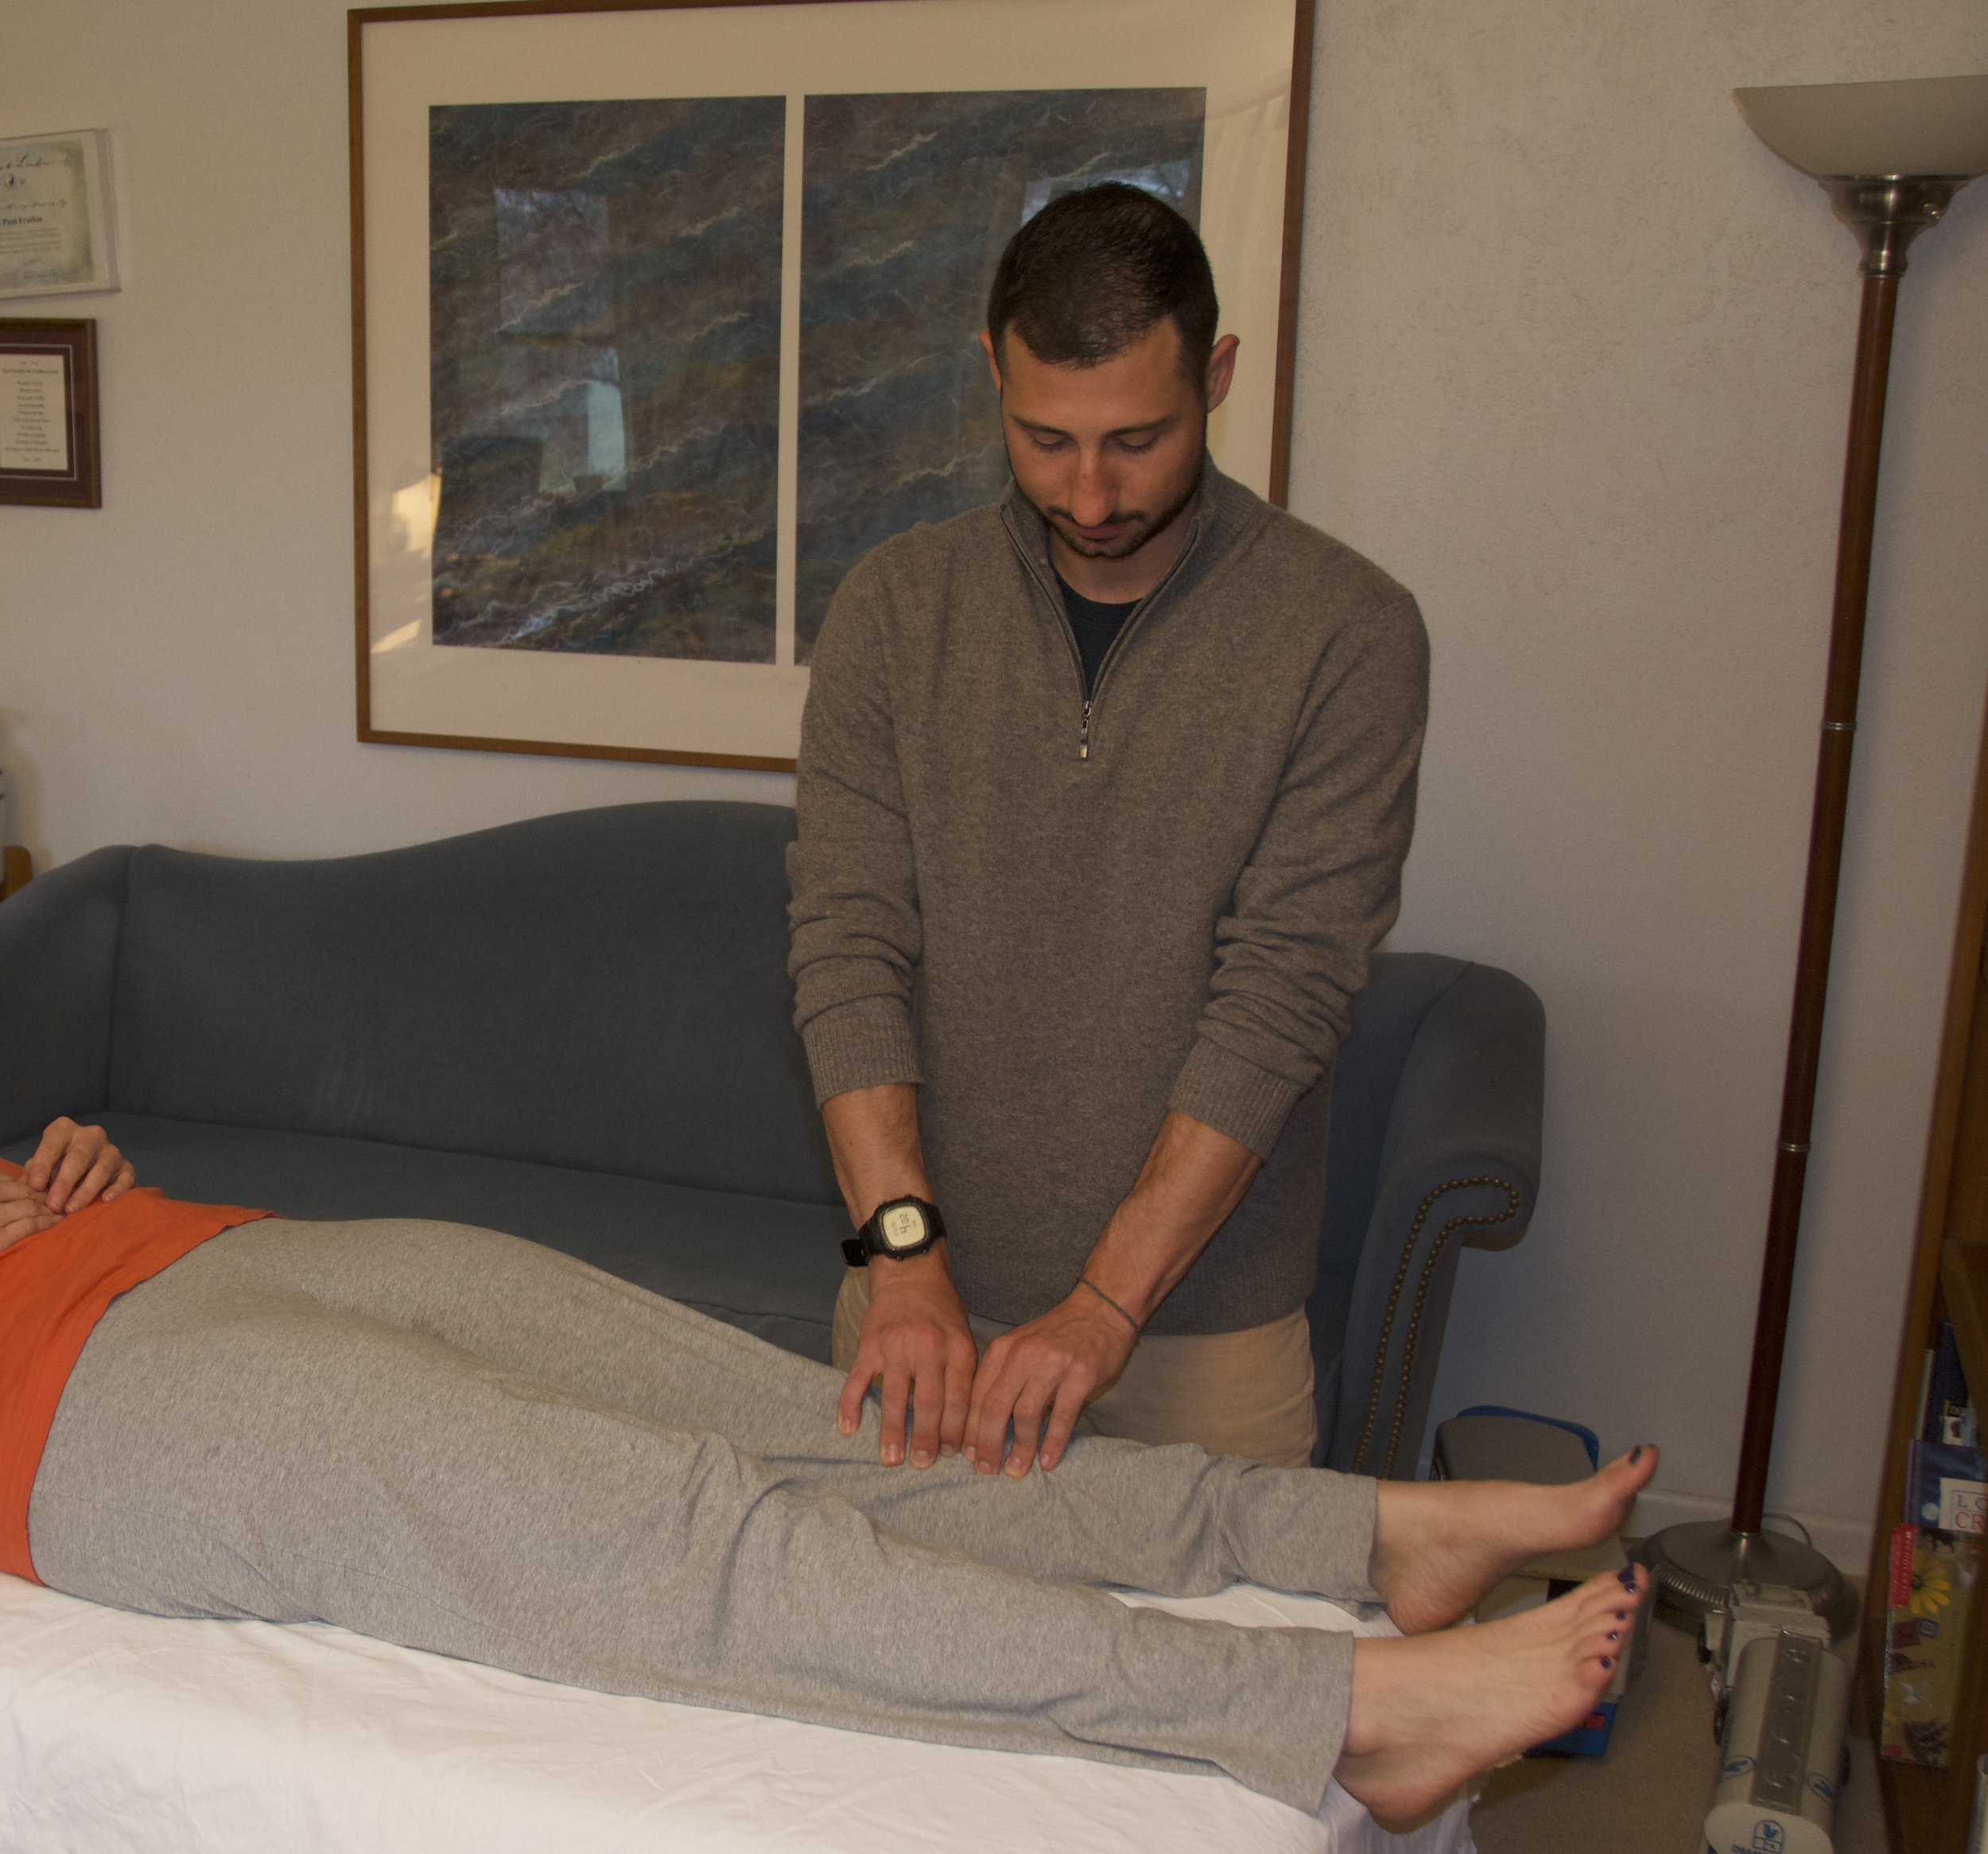 3-acupuncture_chinese_medicine_fertility_sports_medicine_breech_cupping_labor_induction_pain_injury_hudson_valley_NY